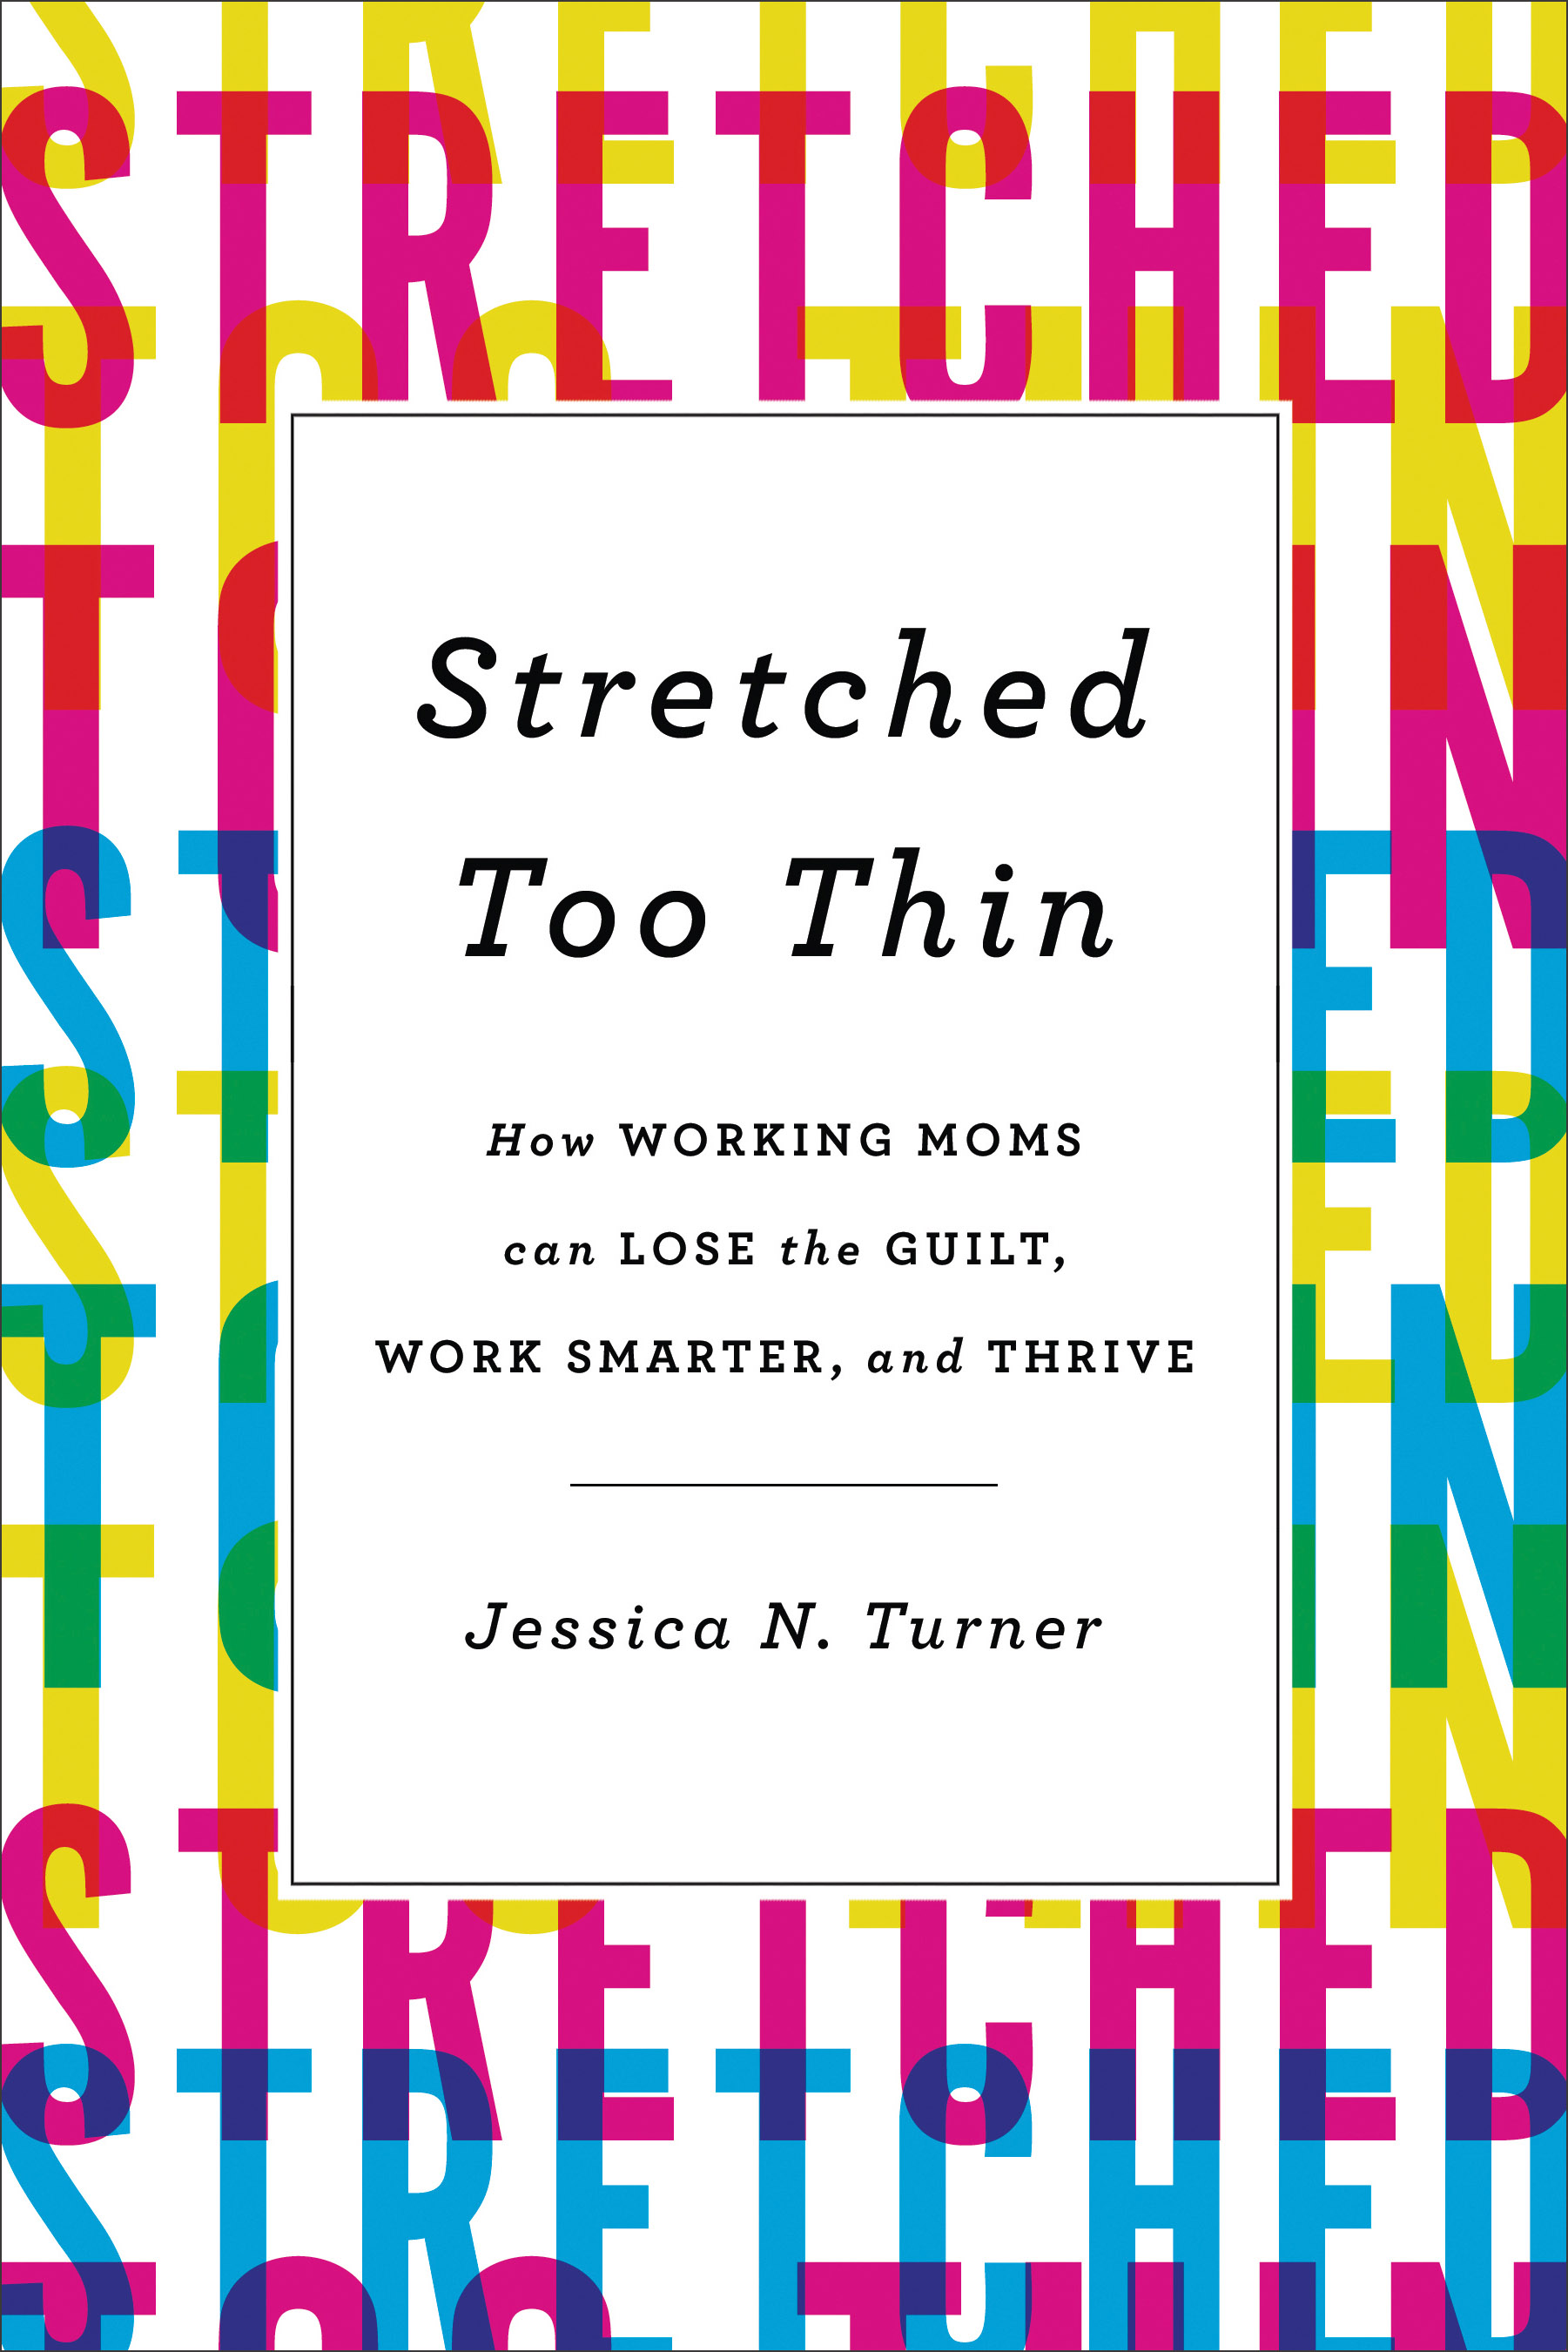 Stretched Too Thin: How Working Moms Can Lose the Guilt, Work Smarter, and Thrive.